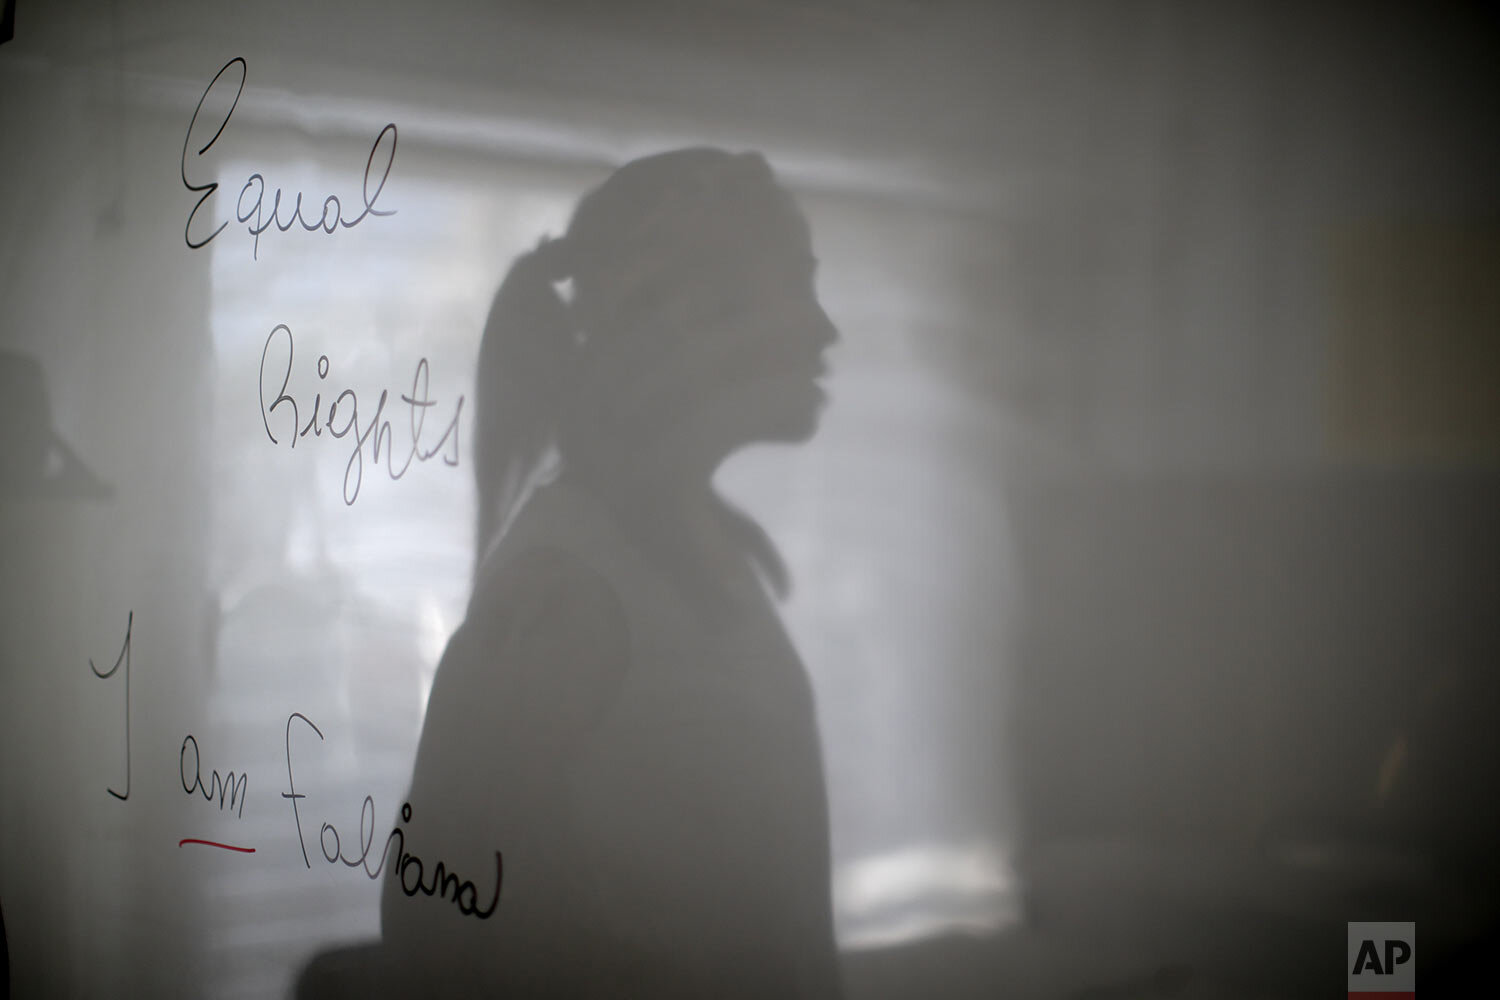 """Transgender woman Fabiana Rodríguez, an English teacher, poses for a portrait with her shadow overlaying the message she wrote on her blackboard: """"Equal rights, I am Fabiana"""" during an interview at the English Institute where she works as a language teacher in Buenos Aires, Argentina, Friday, Nov. 13, 2020. In September, President Alberto Fernández signed a decree establishing a 1% employment quota for transgender people in the public sector. (AP Photo/Natacha Pisarenko)"""